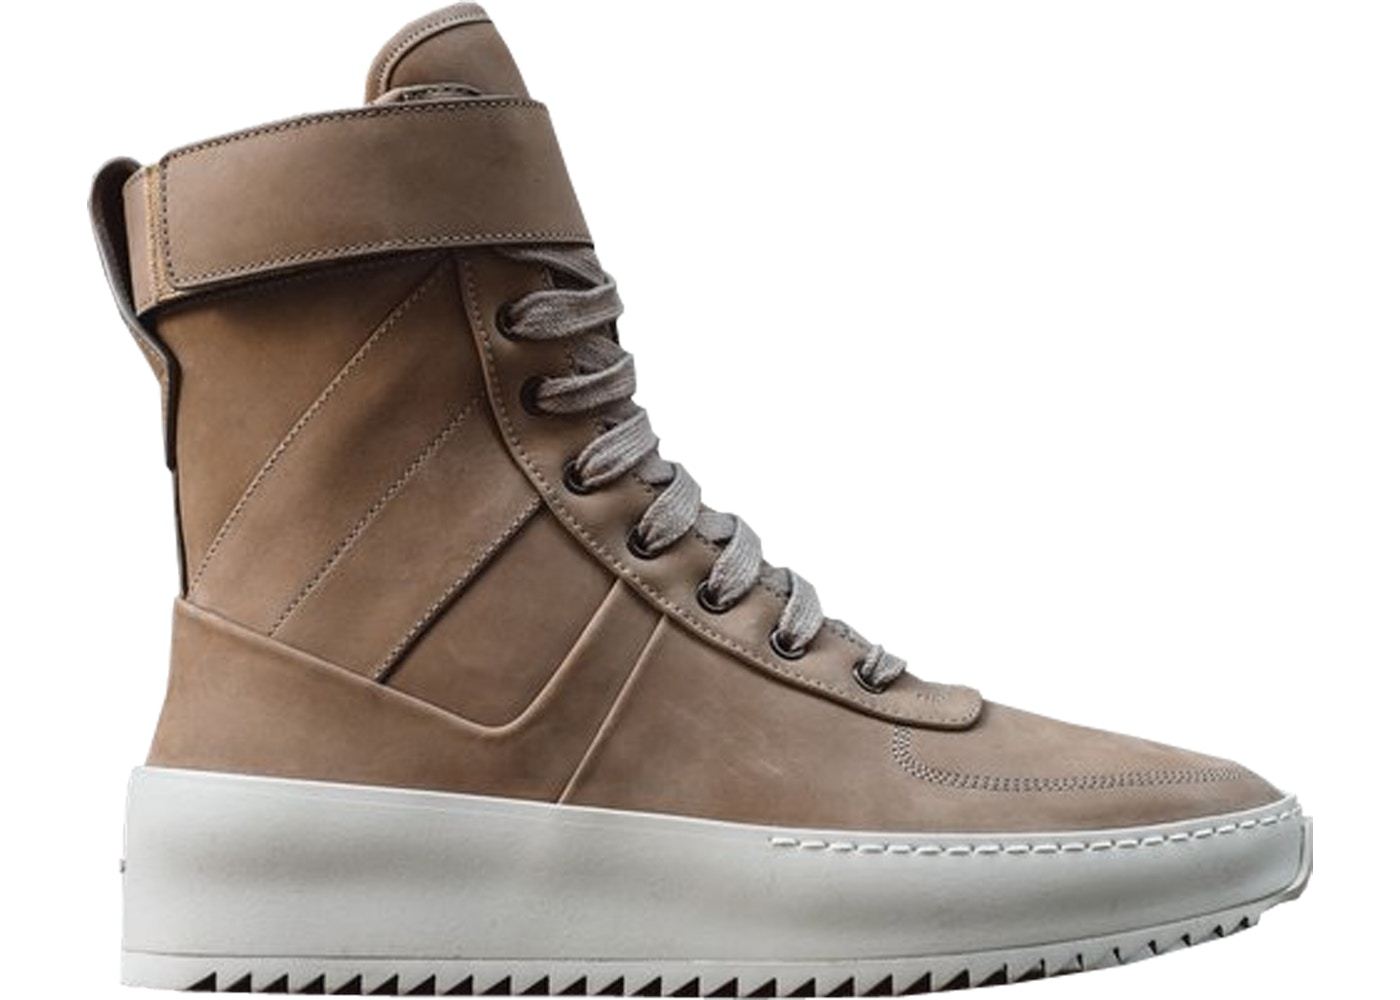 low priced f5b55 a9f1f Fear Of God Military Sneaker Canapa - FG-MSNU-CAN16